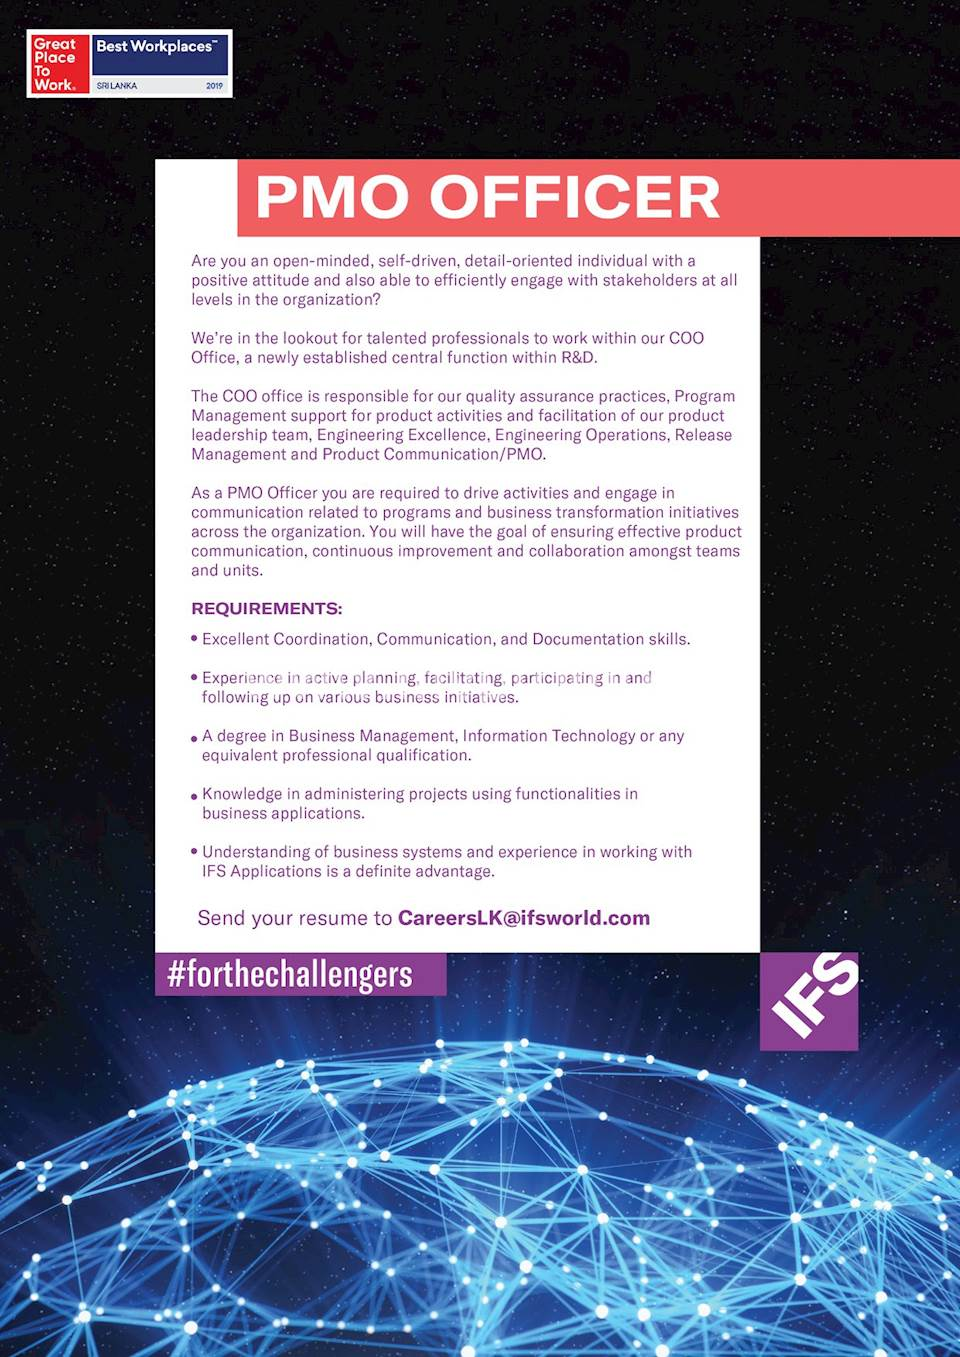 PMO Officer